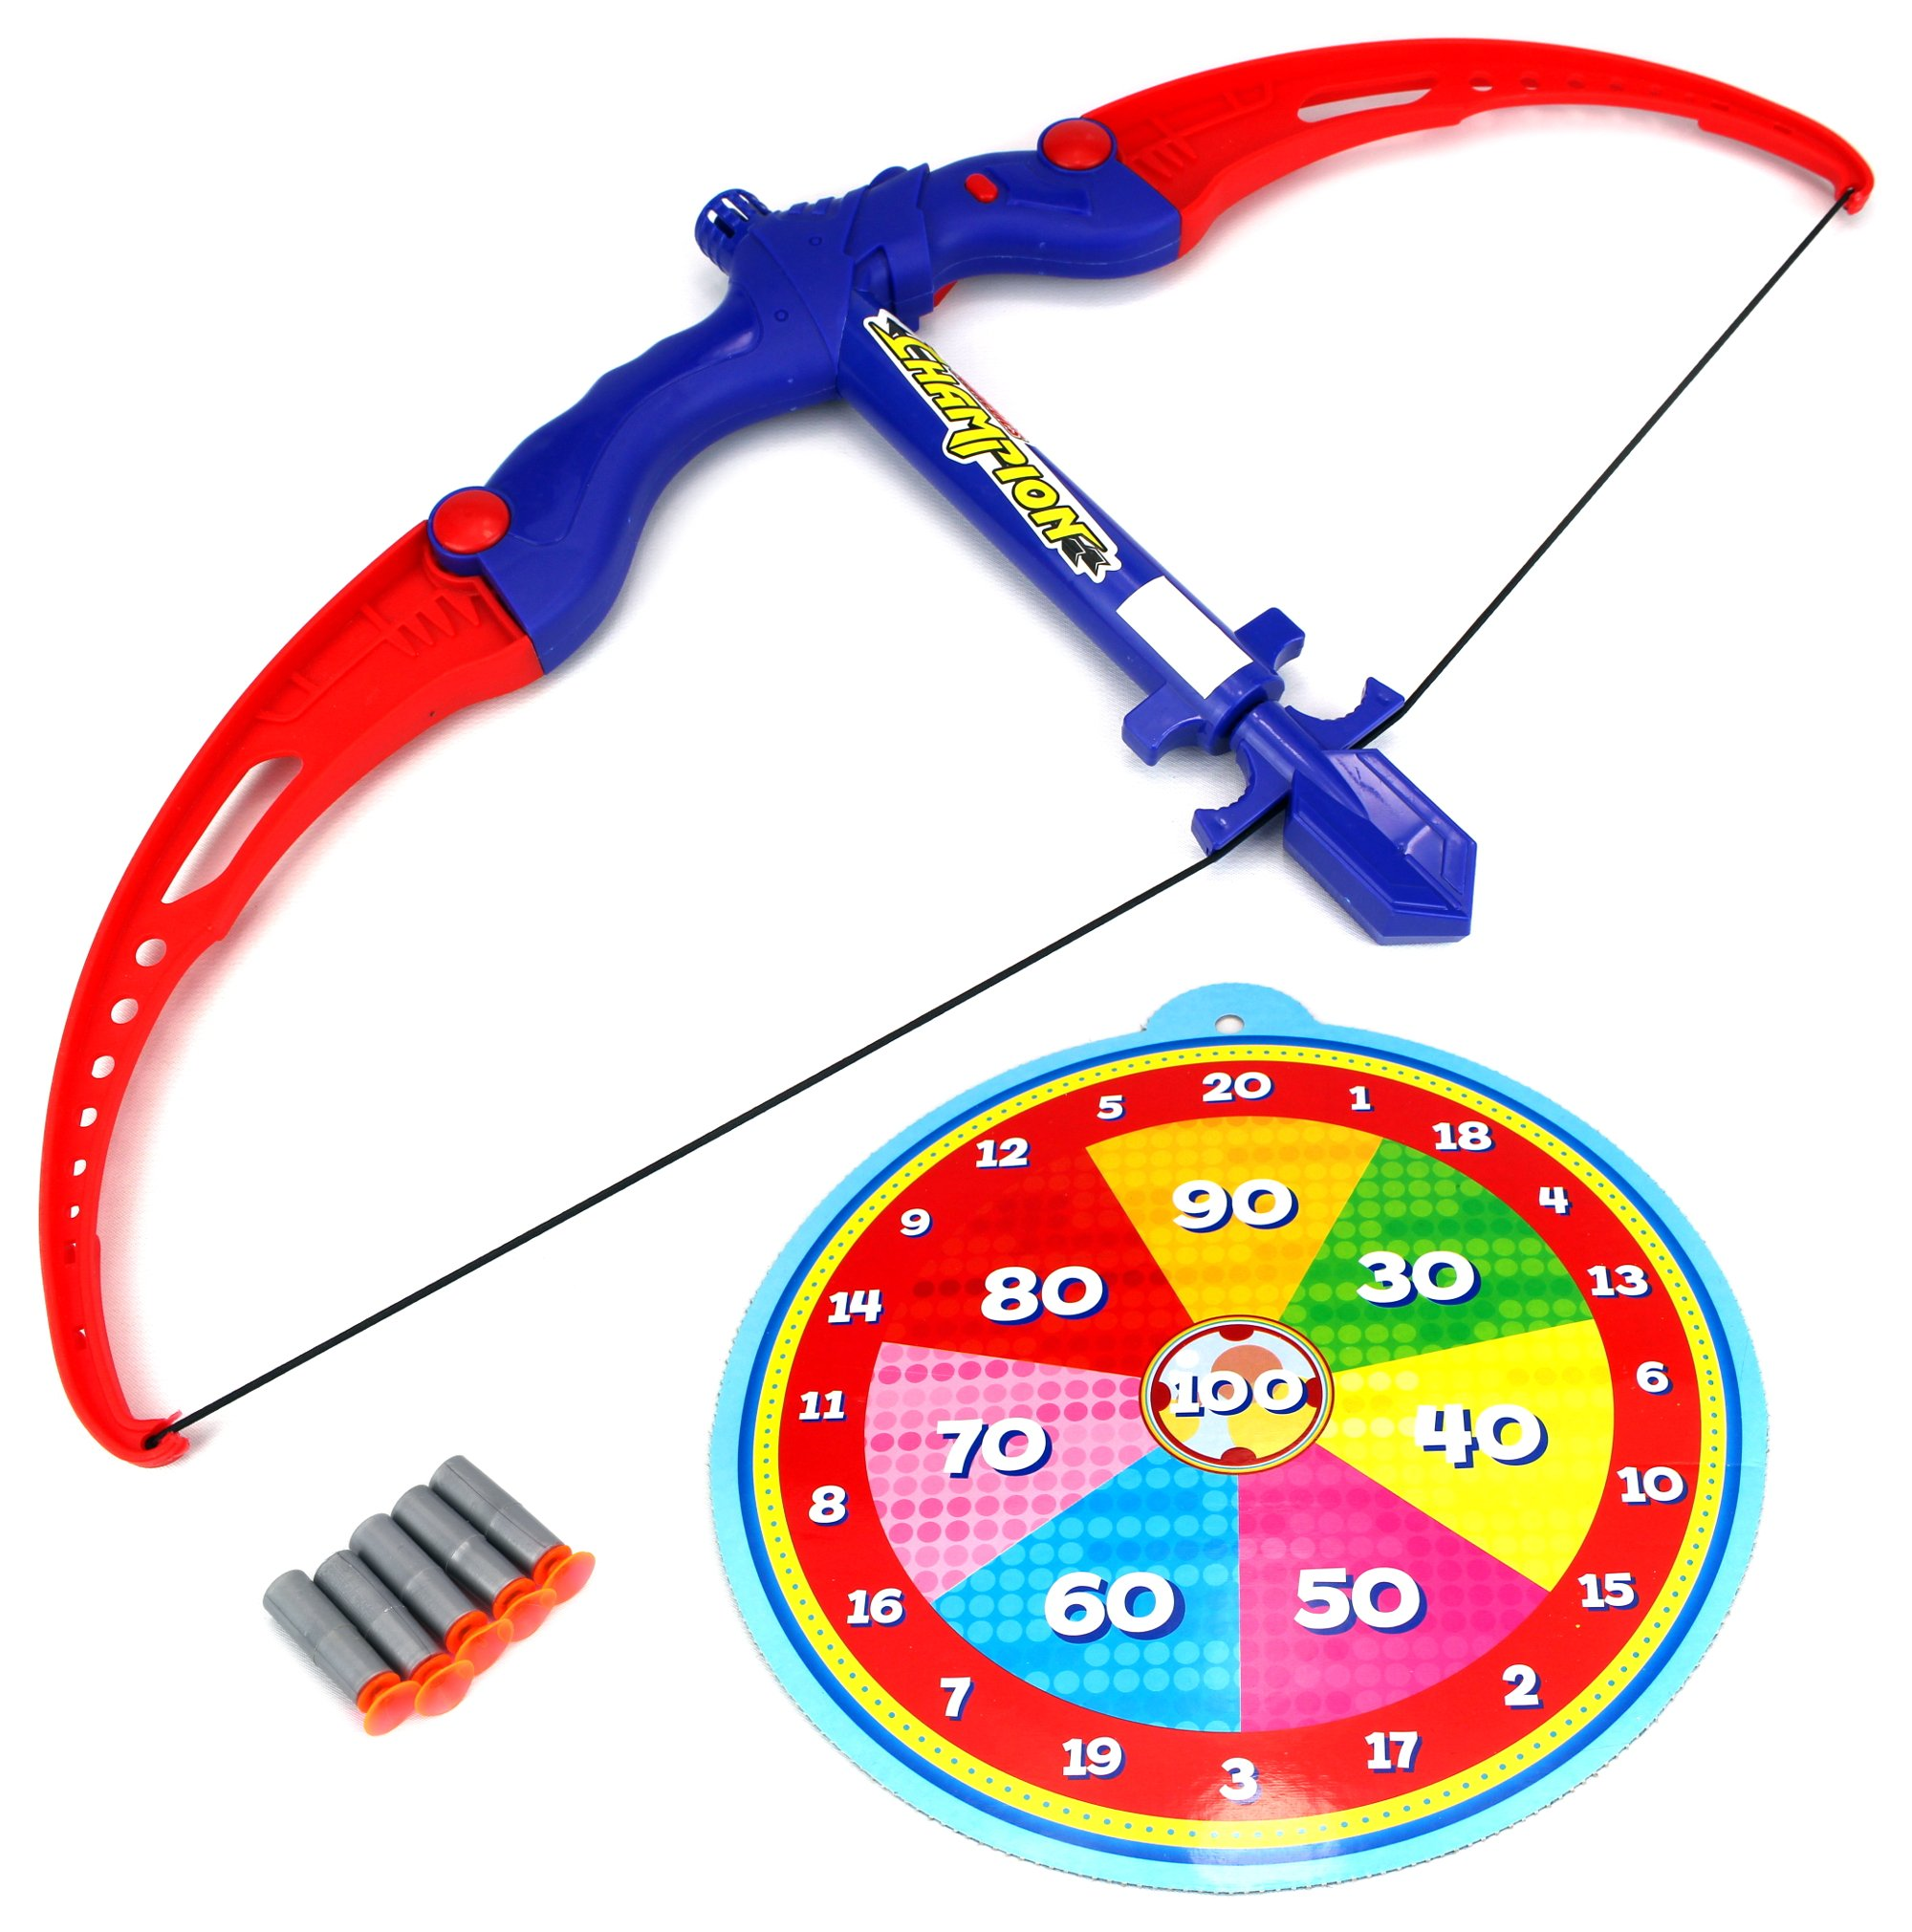 Athletics Bow Children's Kid's Toy Bow and Suction Dart Playset w/ Suction Darts, Target by Velocity Toys (Image #1)